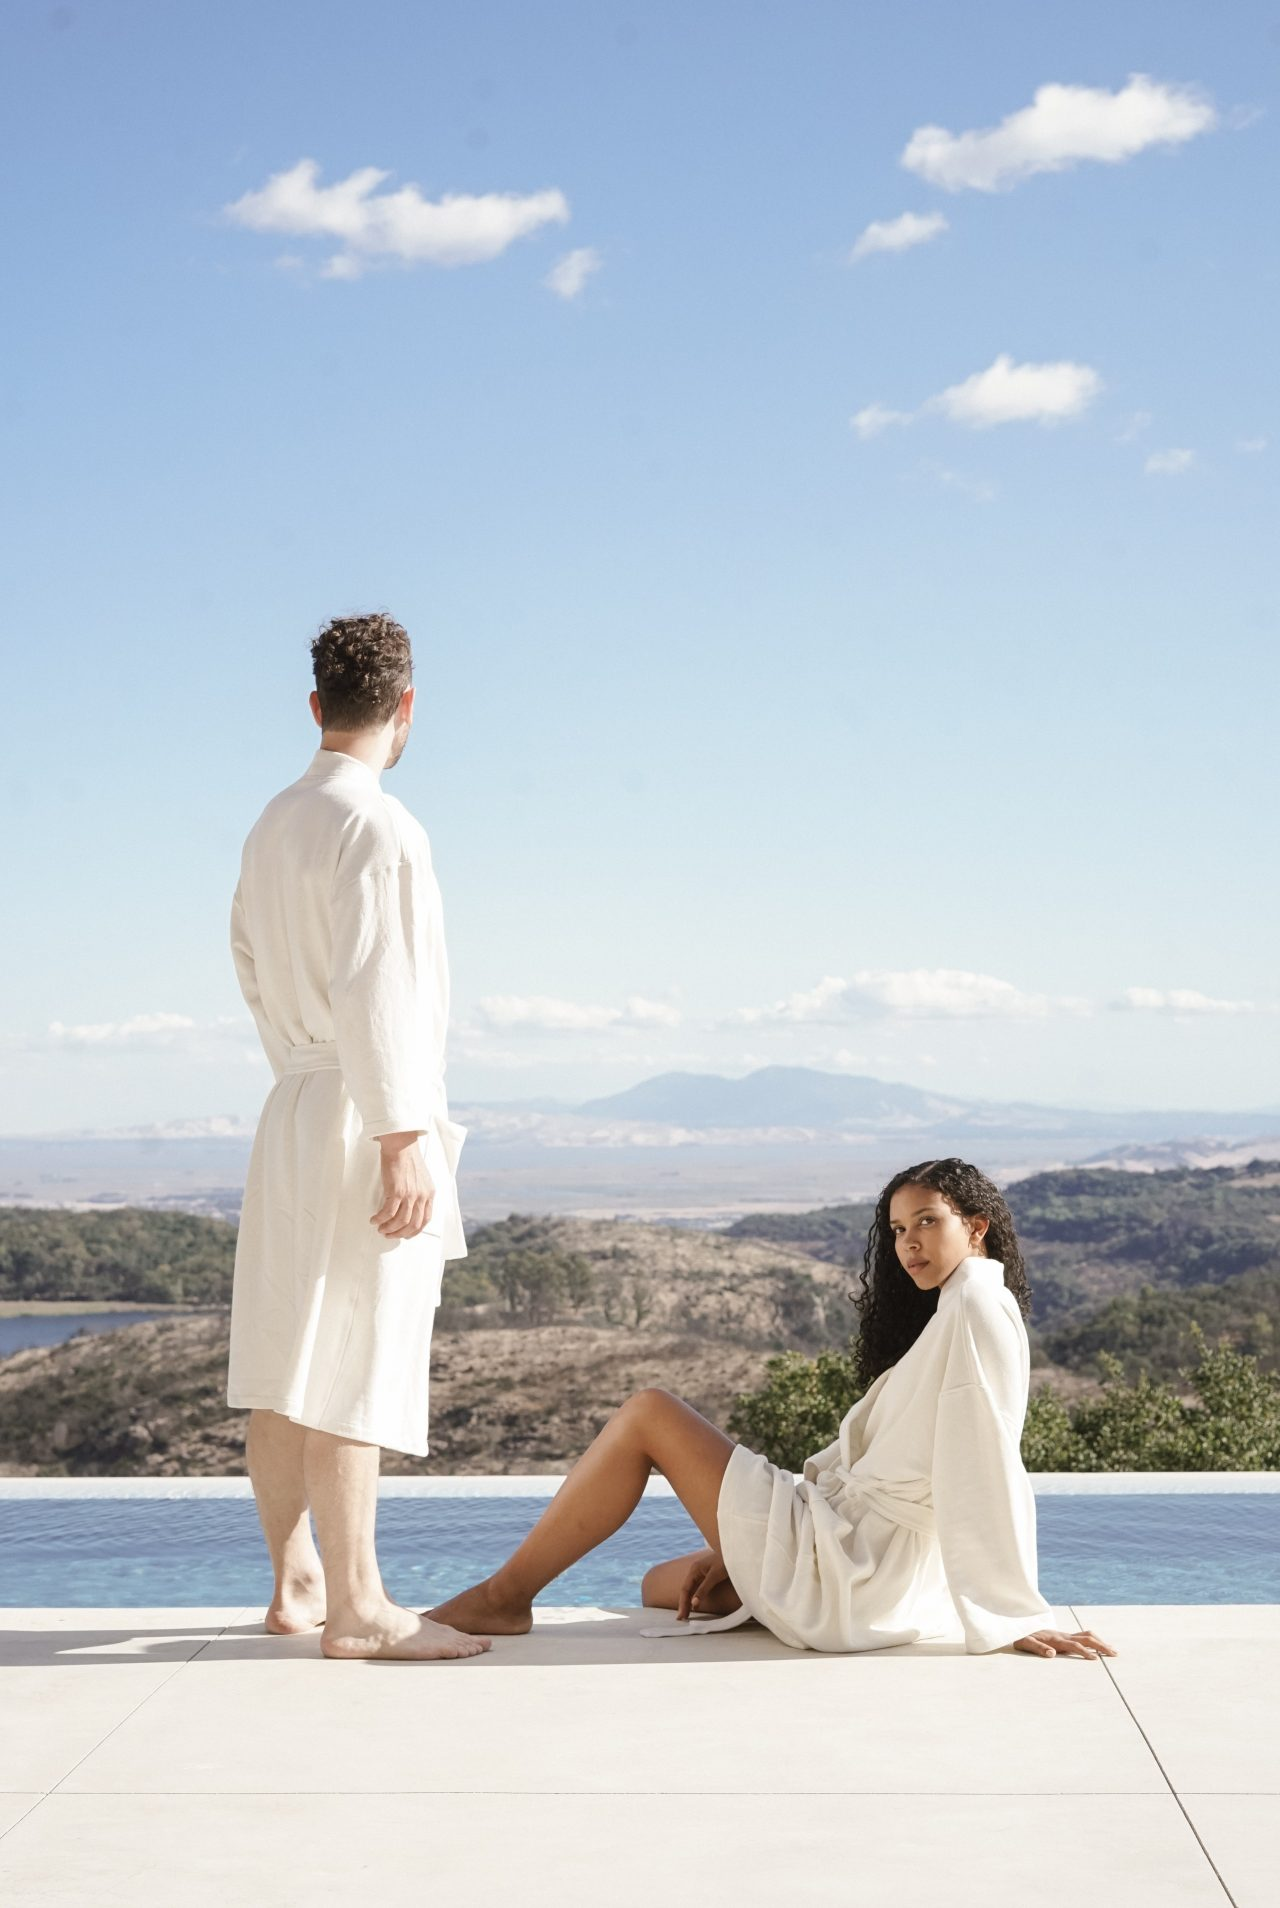 Natural-White-Hemp-Robes-1280x1908.jpg